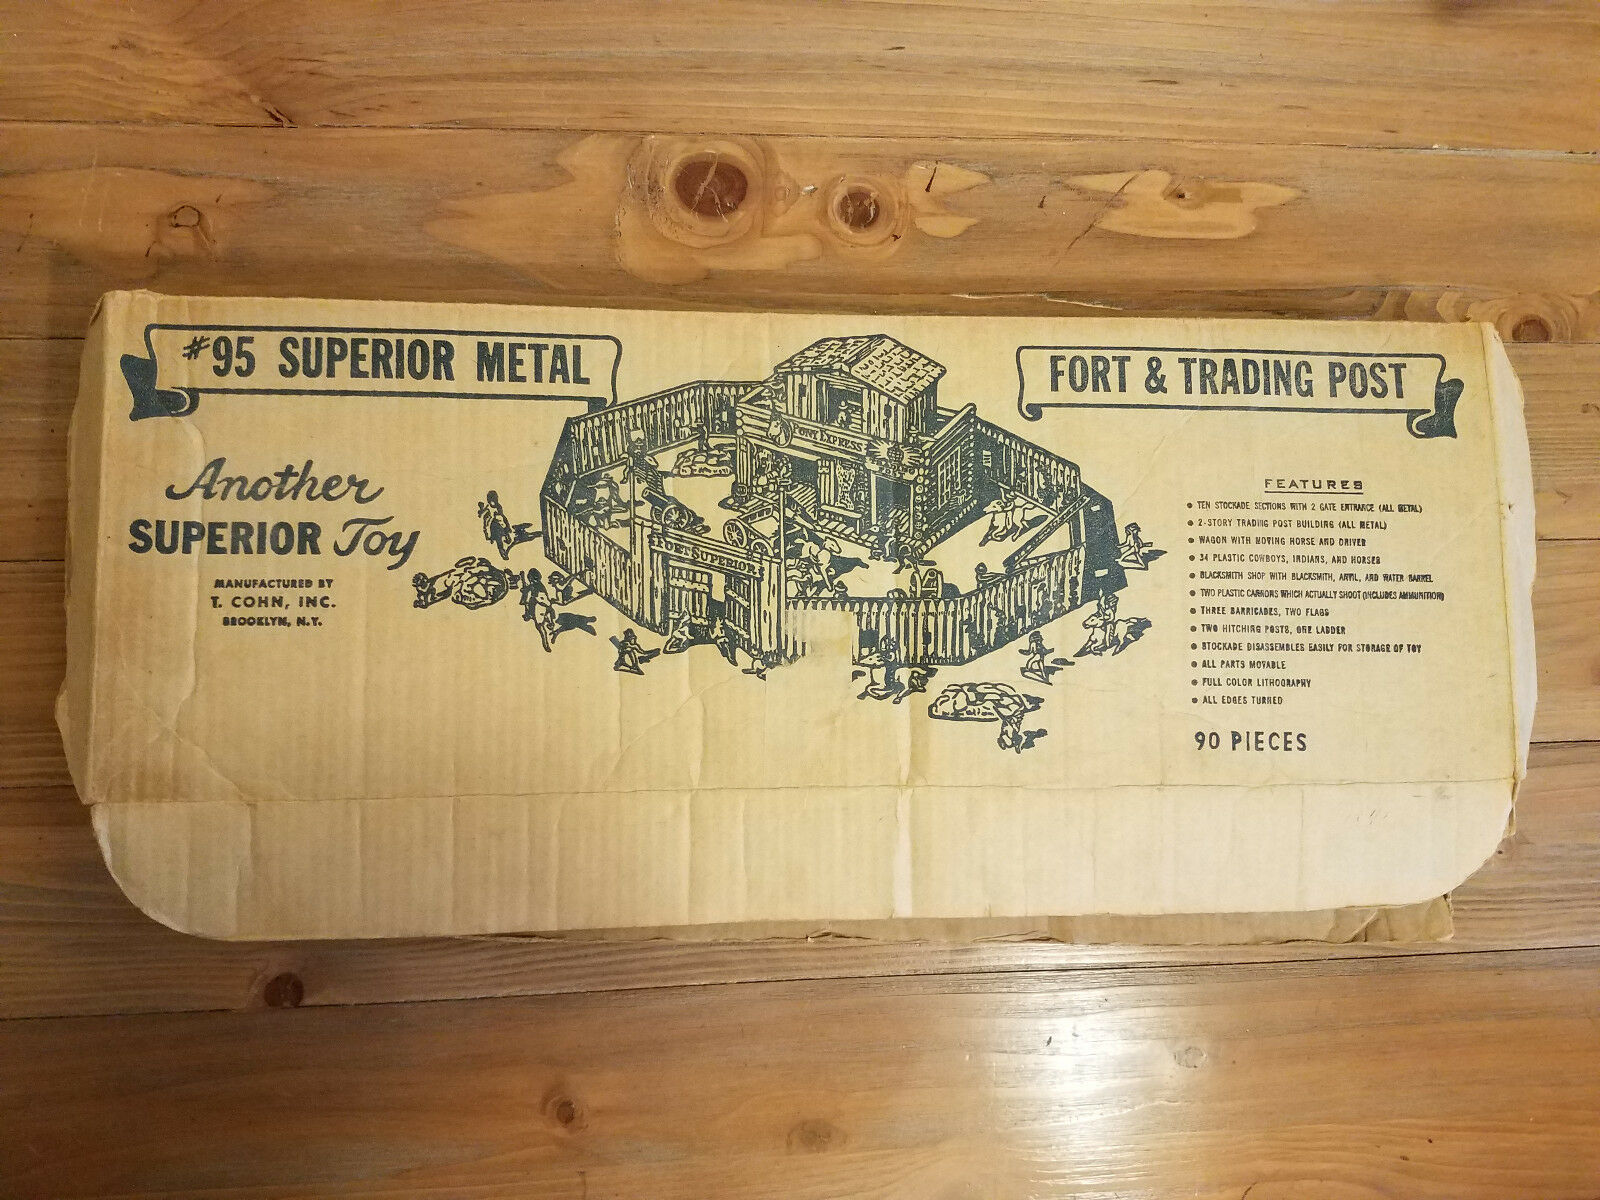 Fort Superior T. Cohn Boxed Great Condition Western Tin Litho 1950s